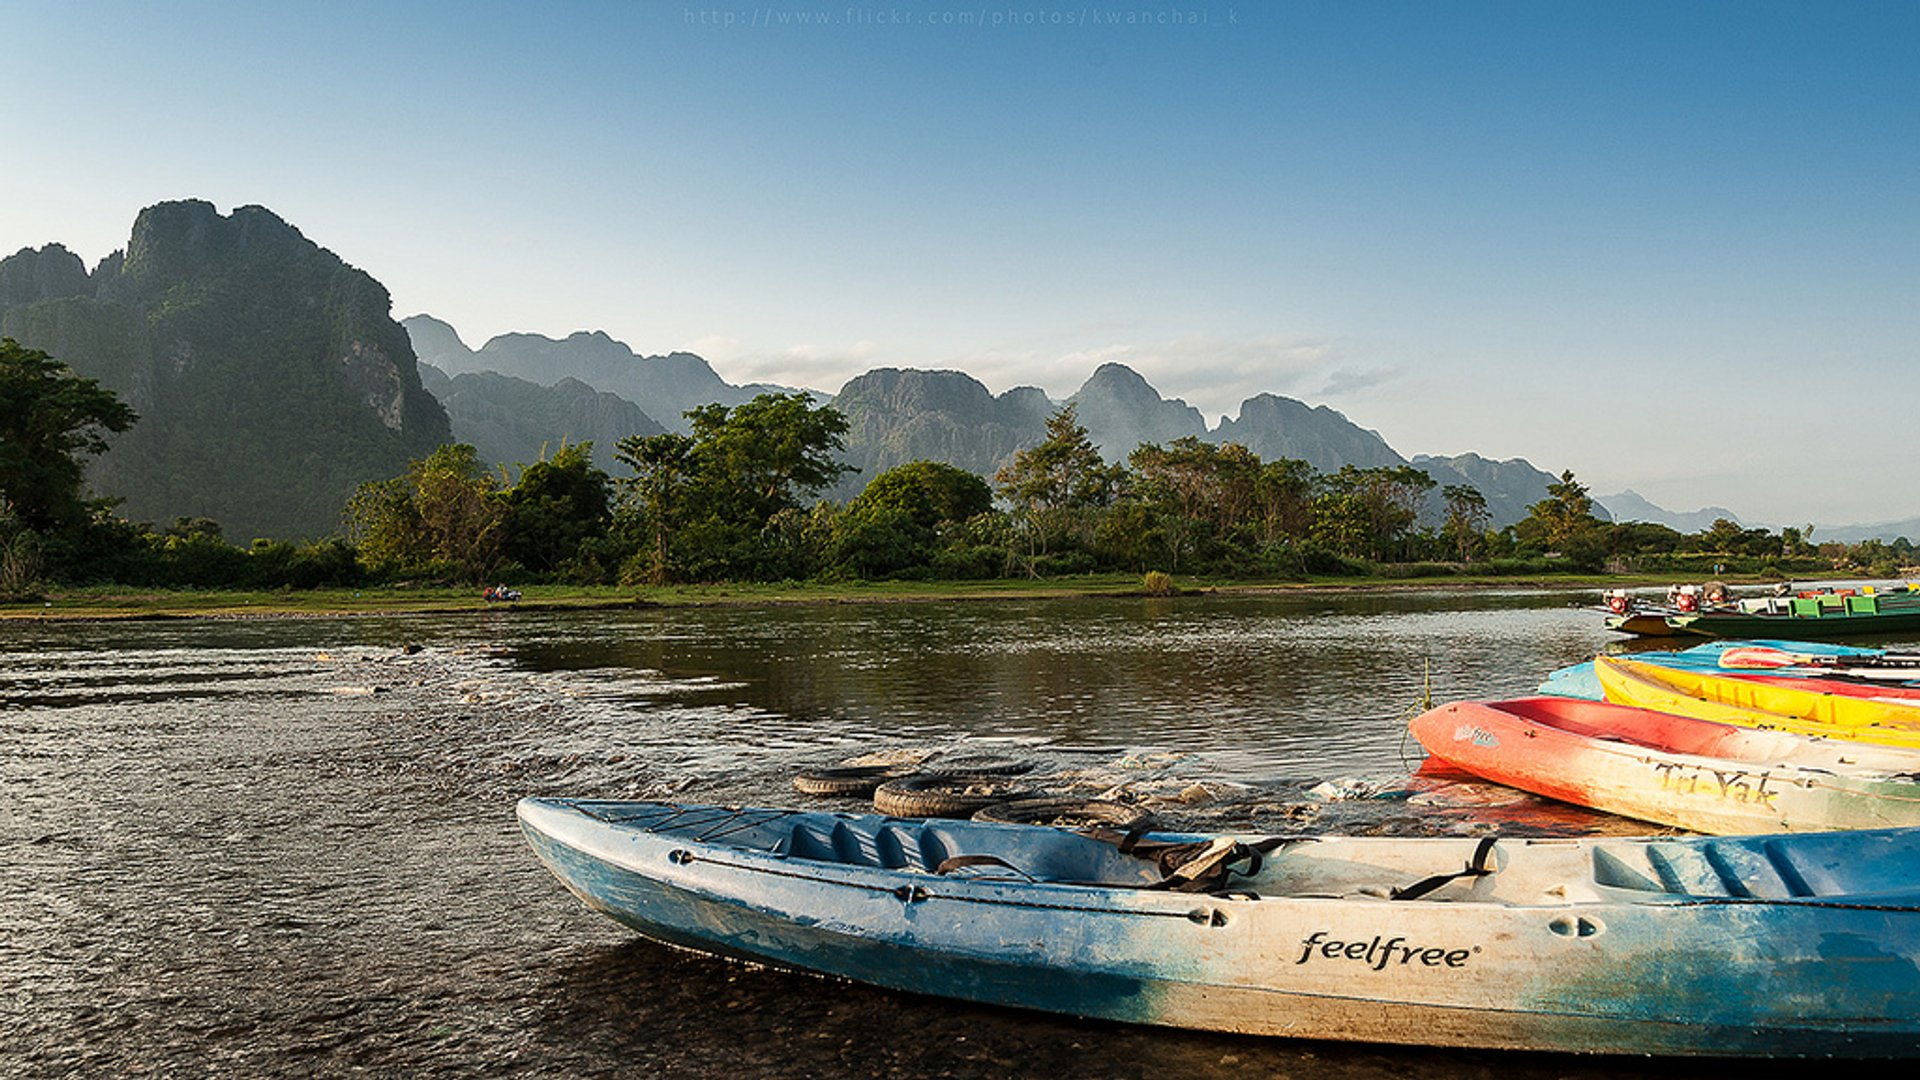 Kayaking in Laos - Best Season 2020